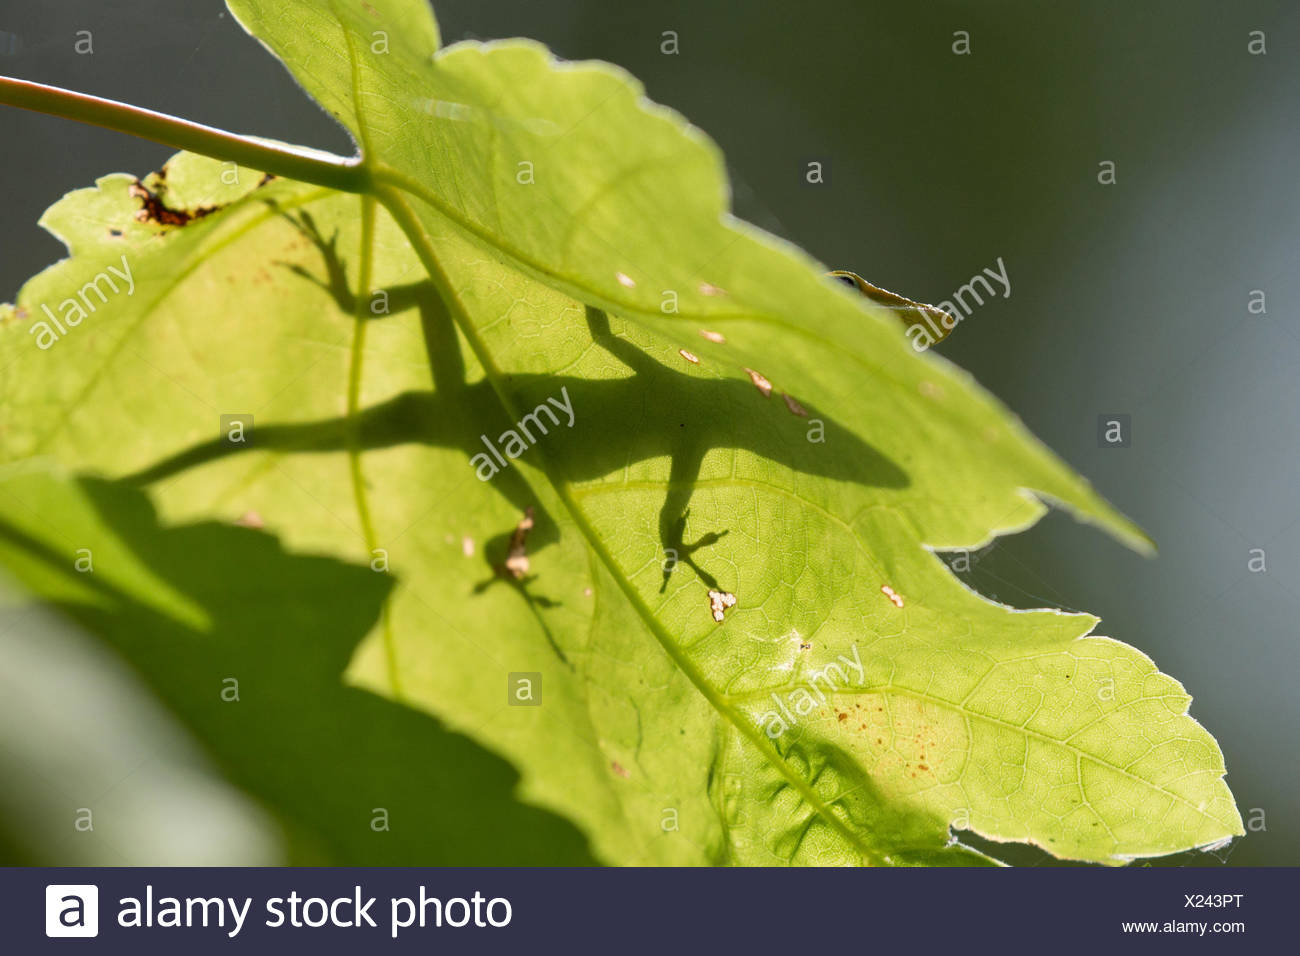 green anole (Anolis carolinensis), shaddow on a loeaf in backlight, USA, Florida - Stock Image